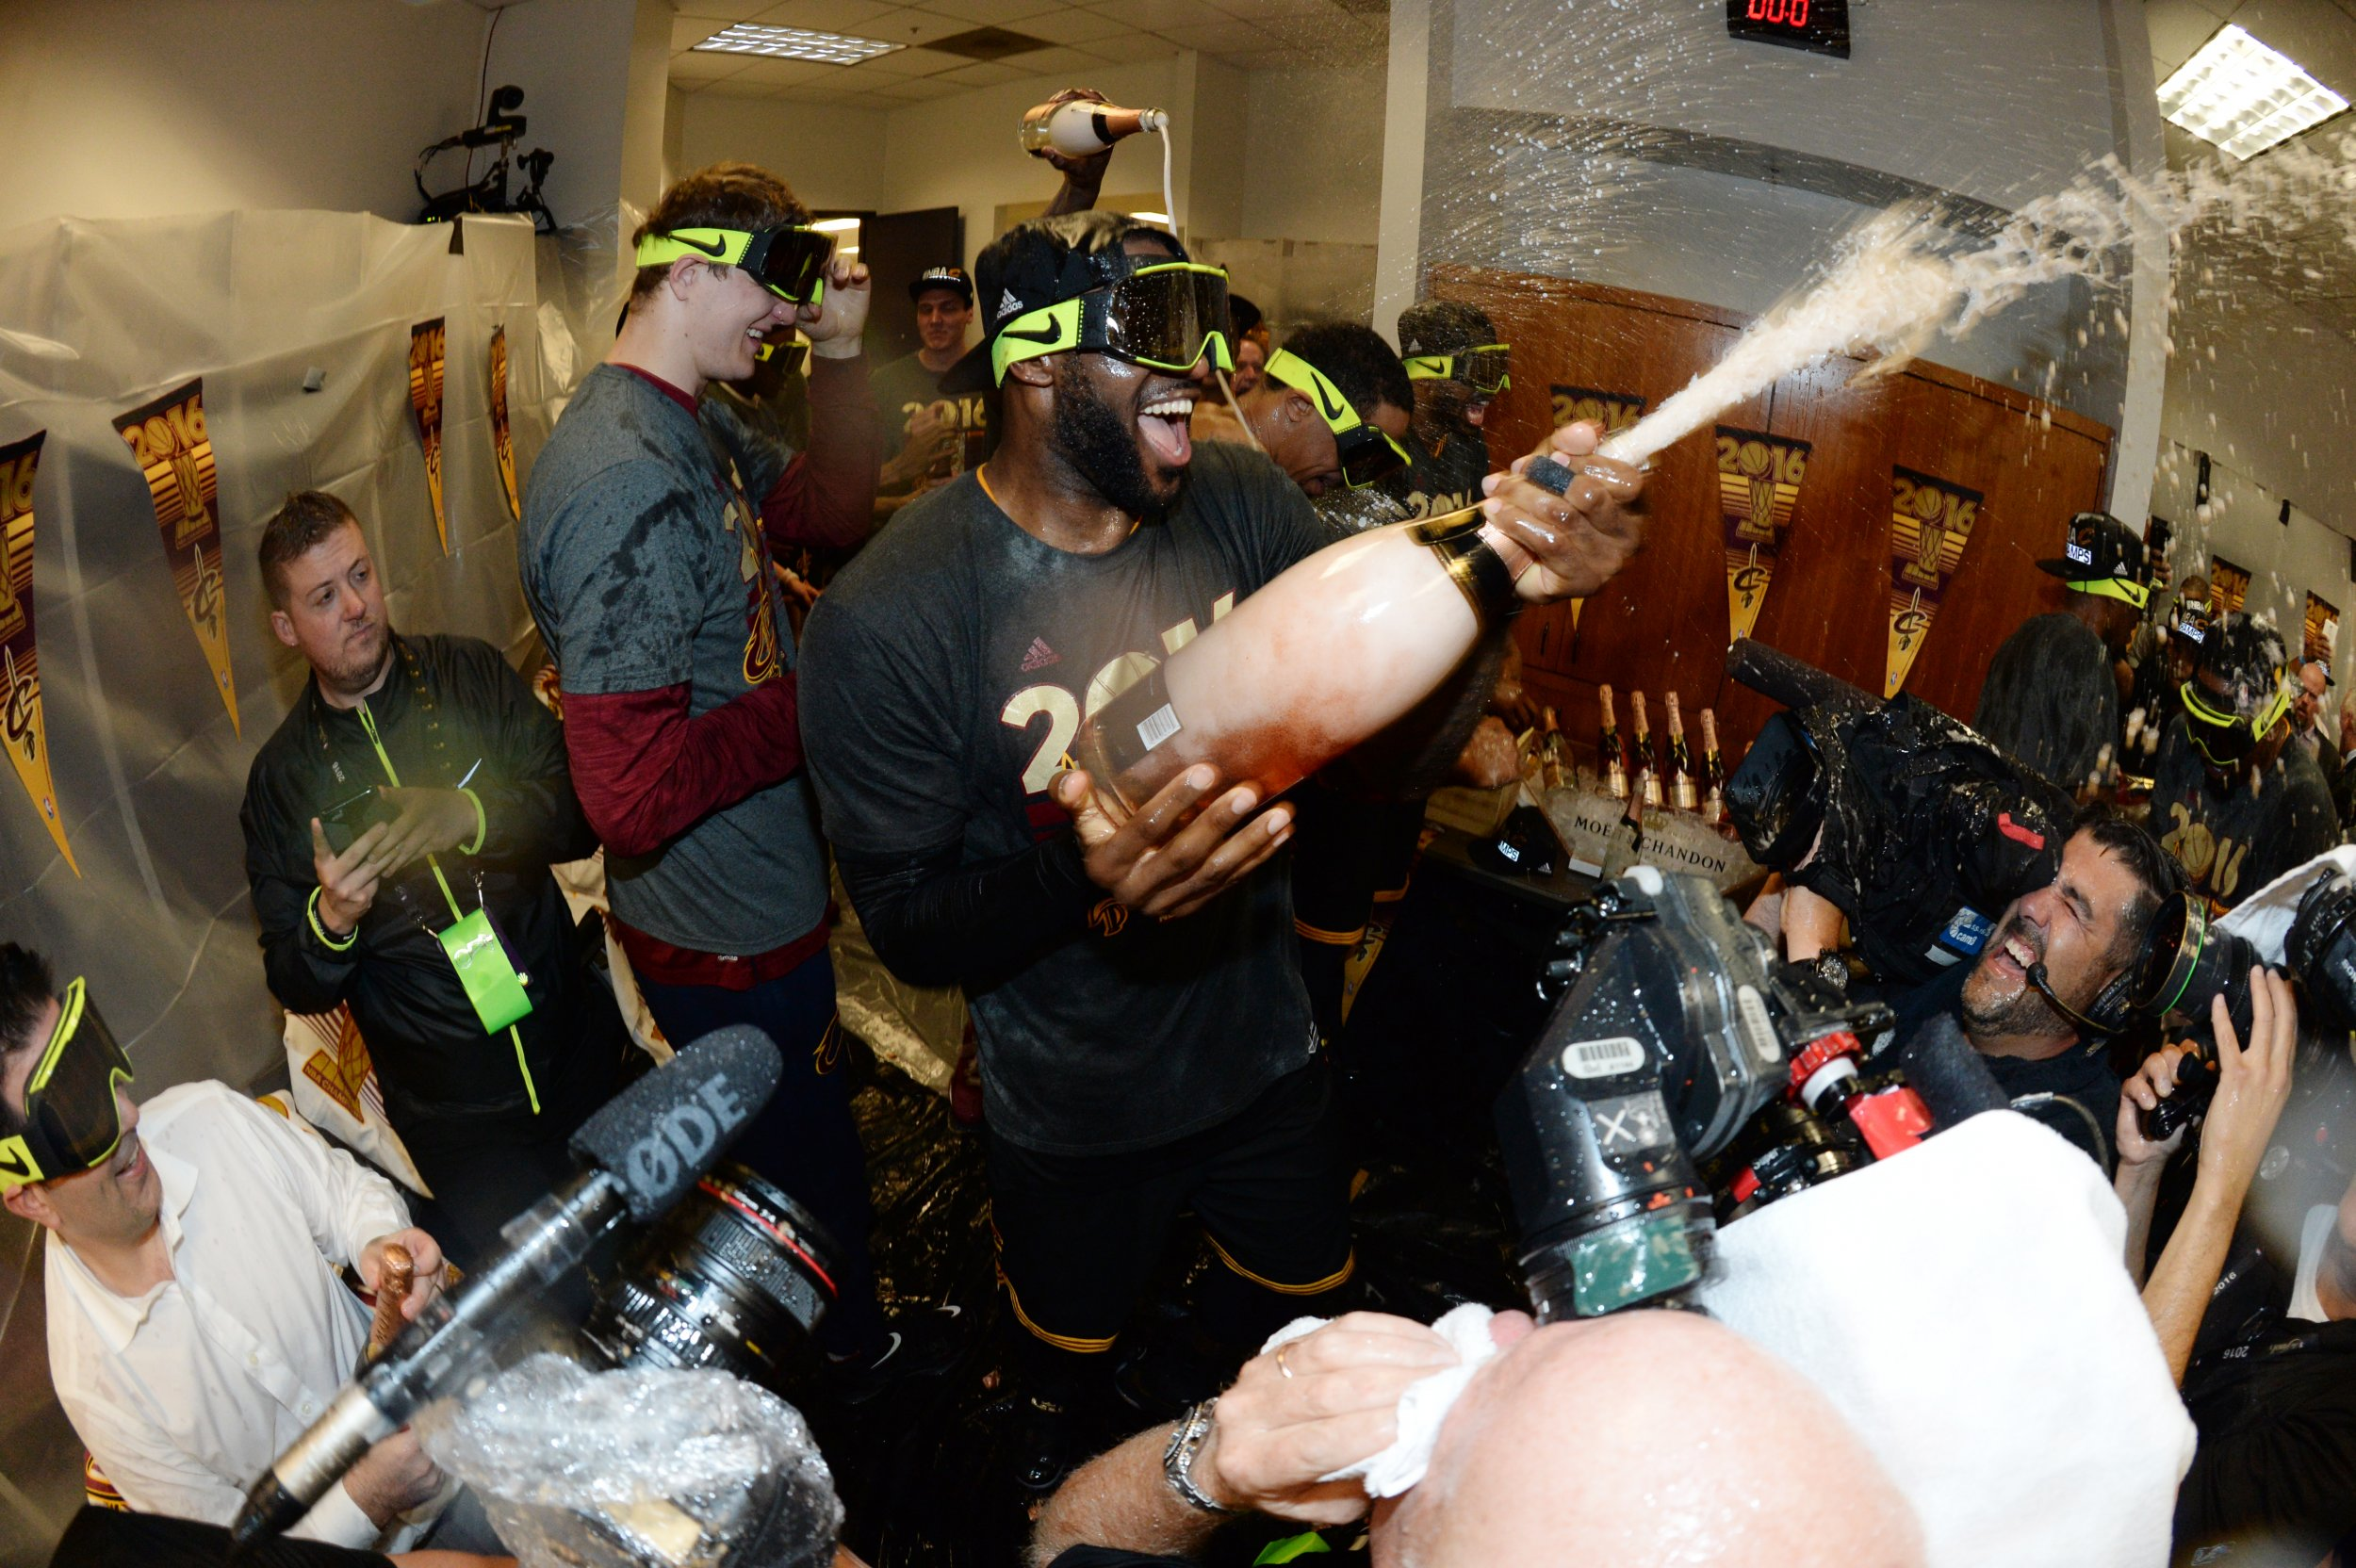 Talking With the Man Who Has Photographed the Last 34 NBA Finals Locker Room Celebrations